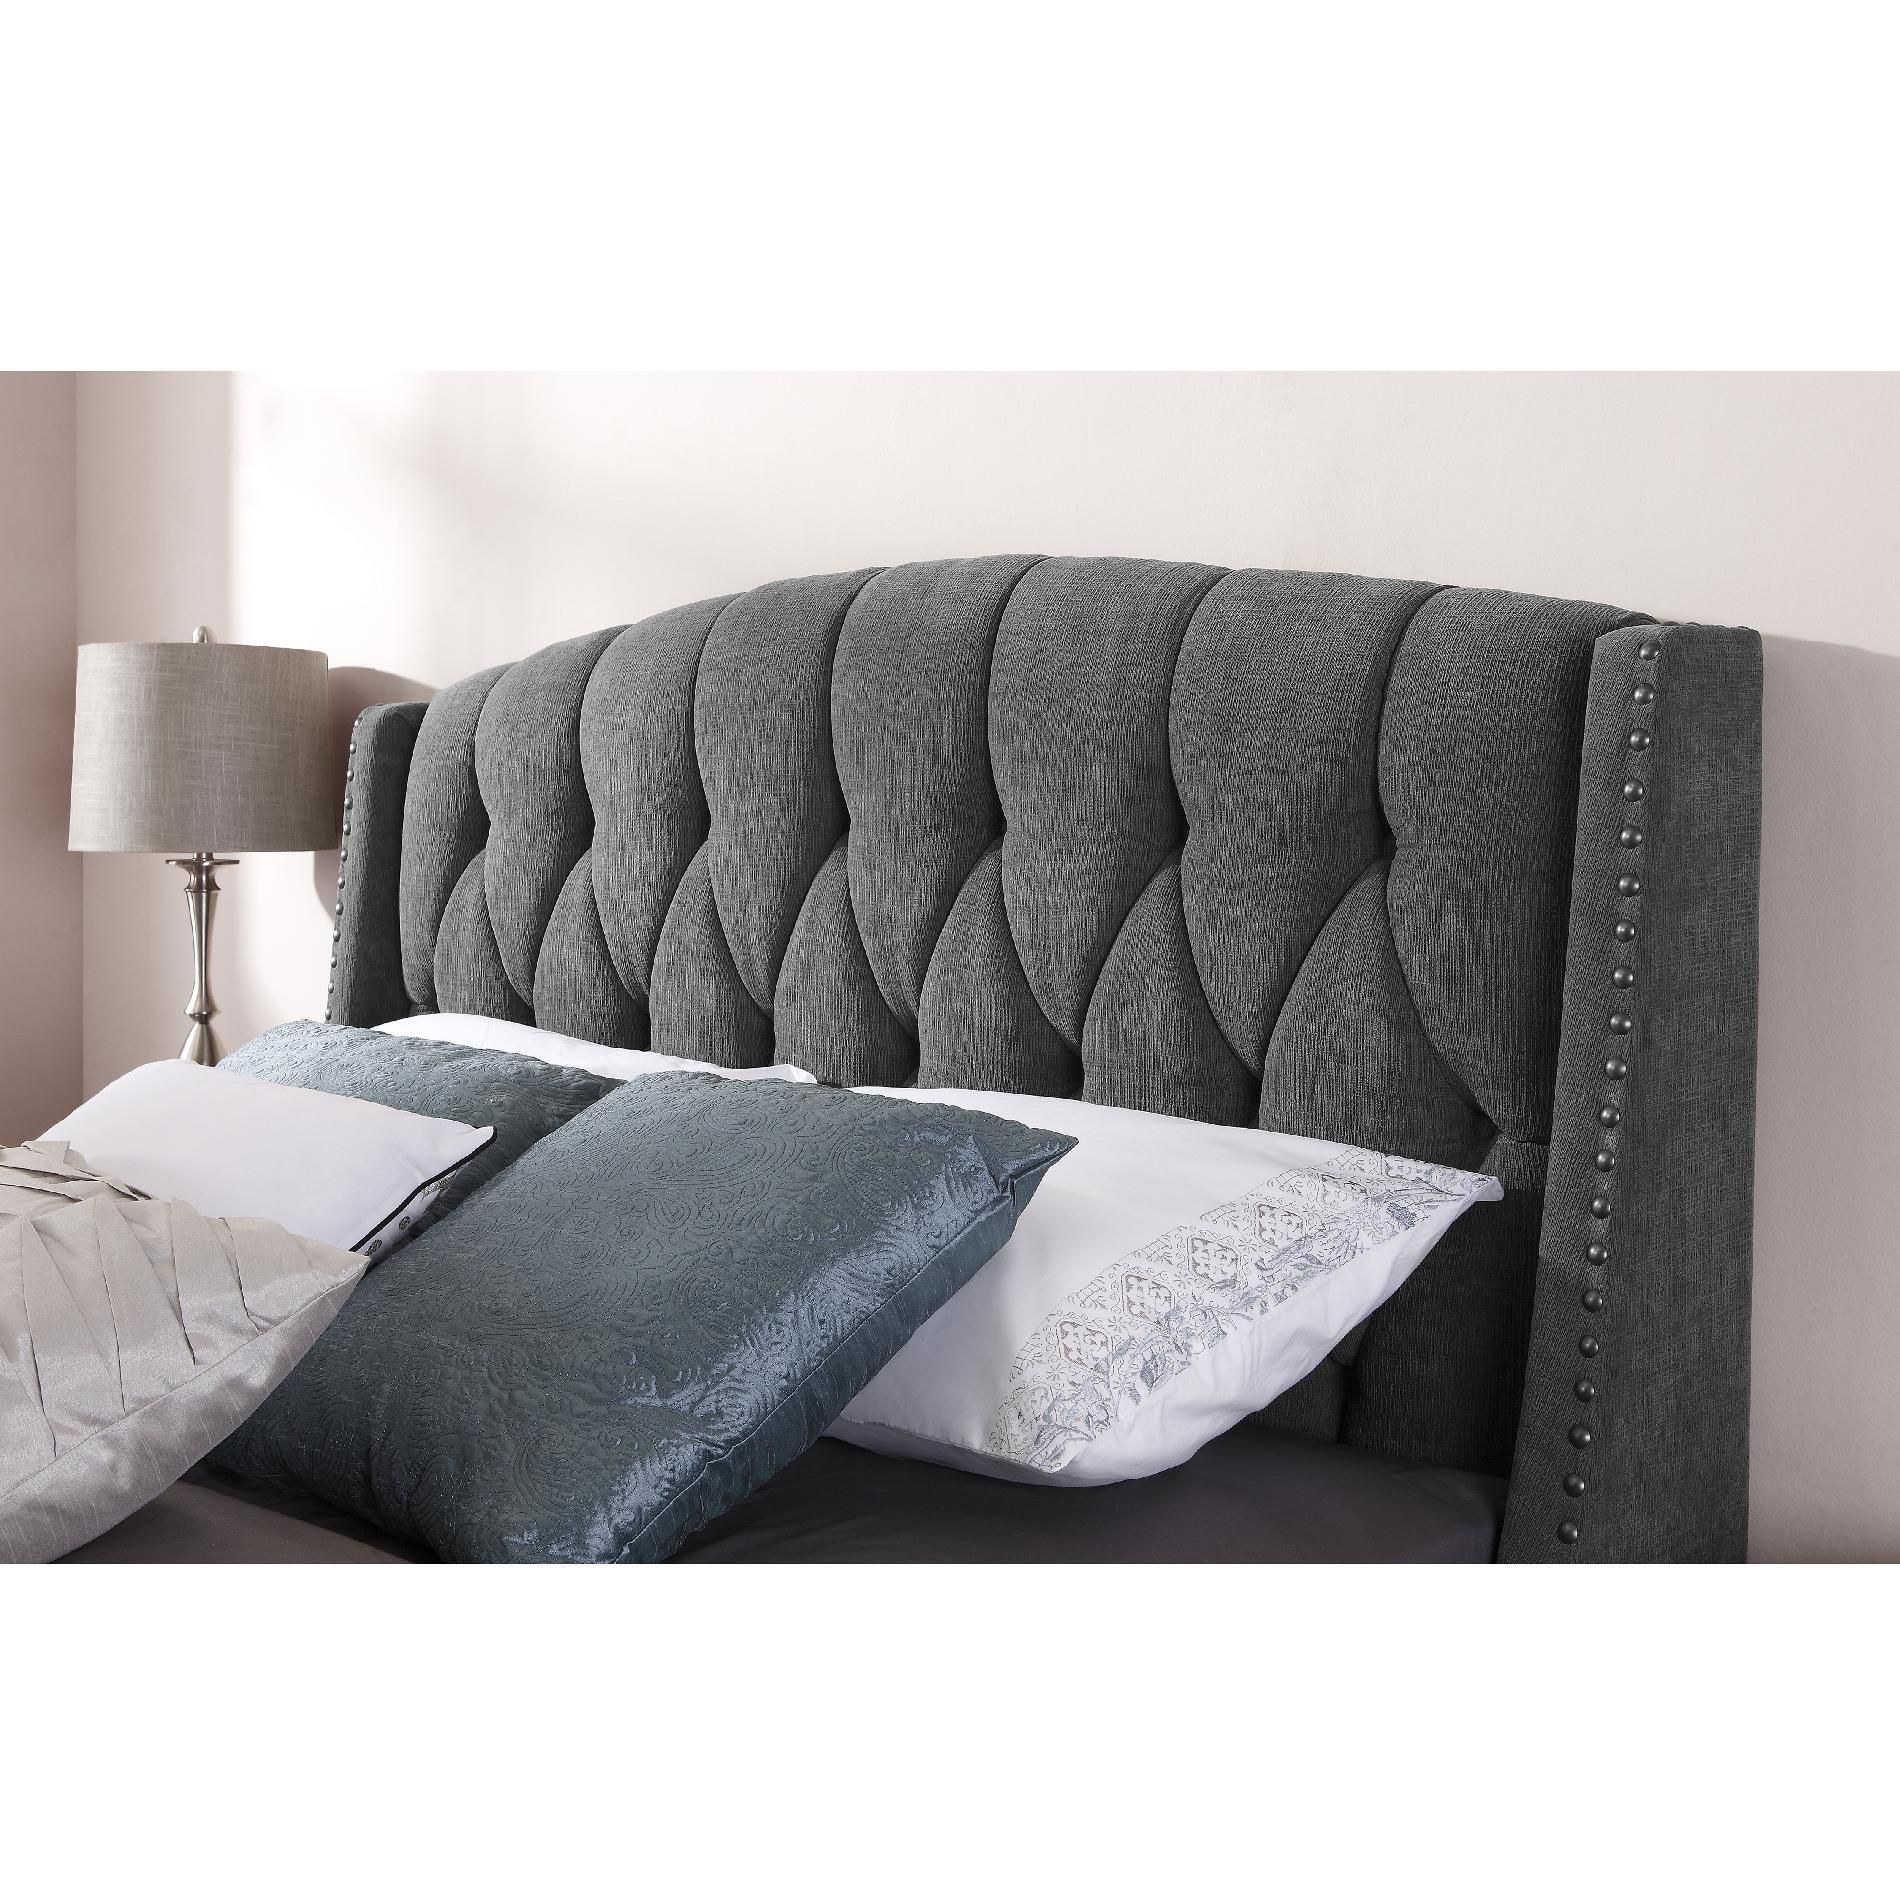 dorel signature sophia steel grey headboard available in full queen and king size buy it. Black Bedroom Furniture Sets. Home Design Ideas